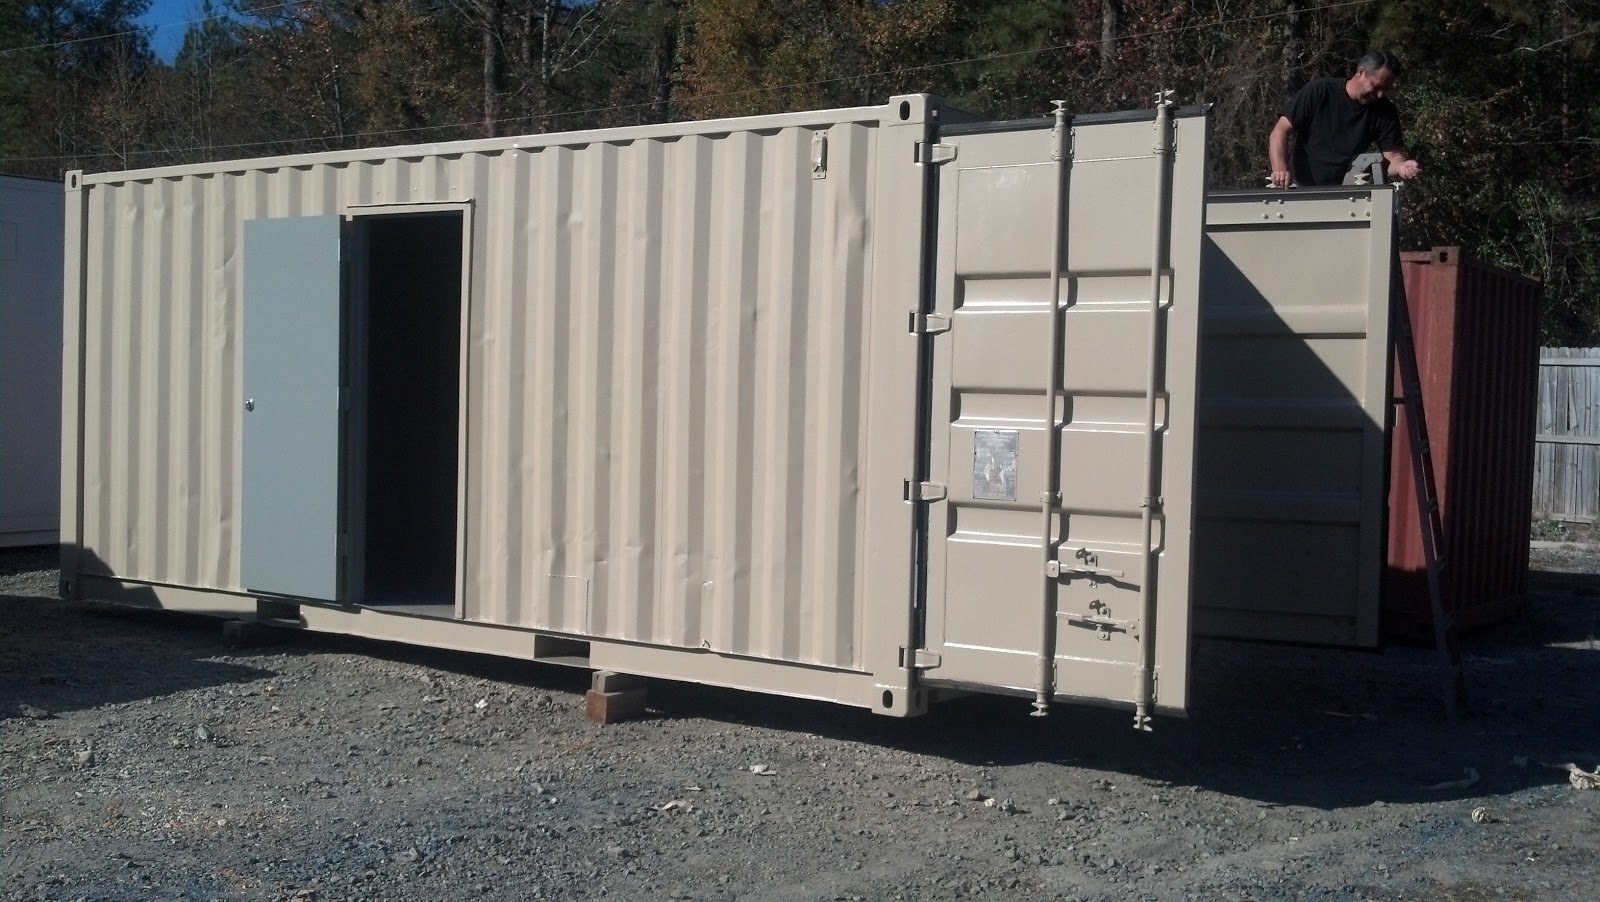 Best Kitchen Gallery: Atlanta Used Shipping Containers And Semi Trailers 2012 of Shipping Container Storm Shelter on rachelxblog.com